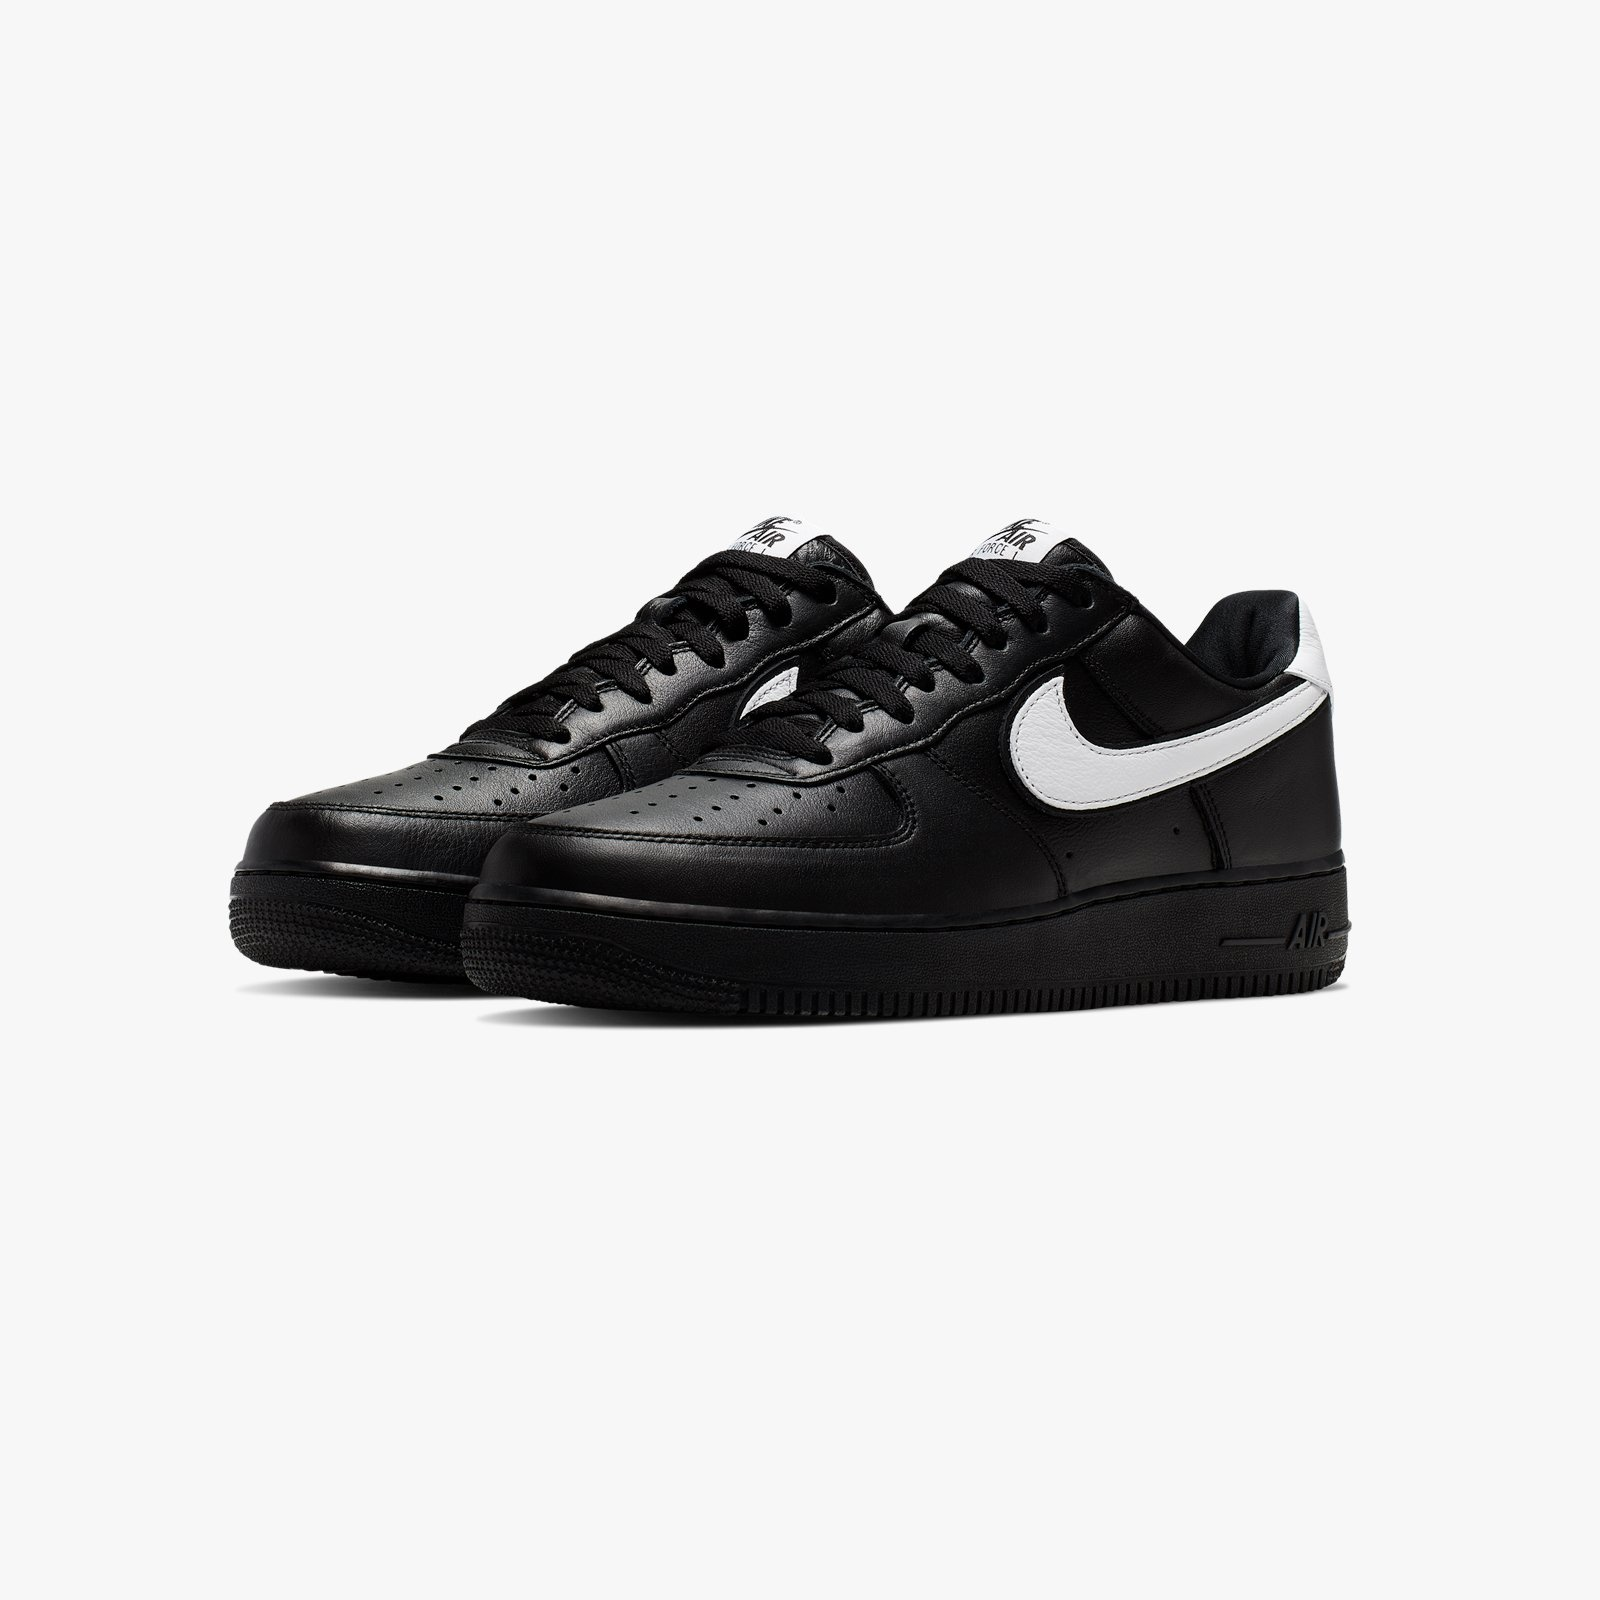 Nike Air Force 1 Low Retro QS Zwart / Wit - Dames Sneaker ...